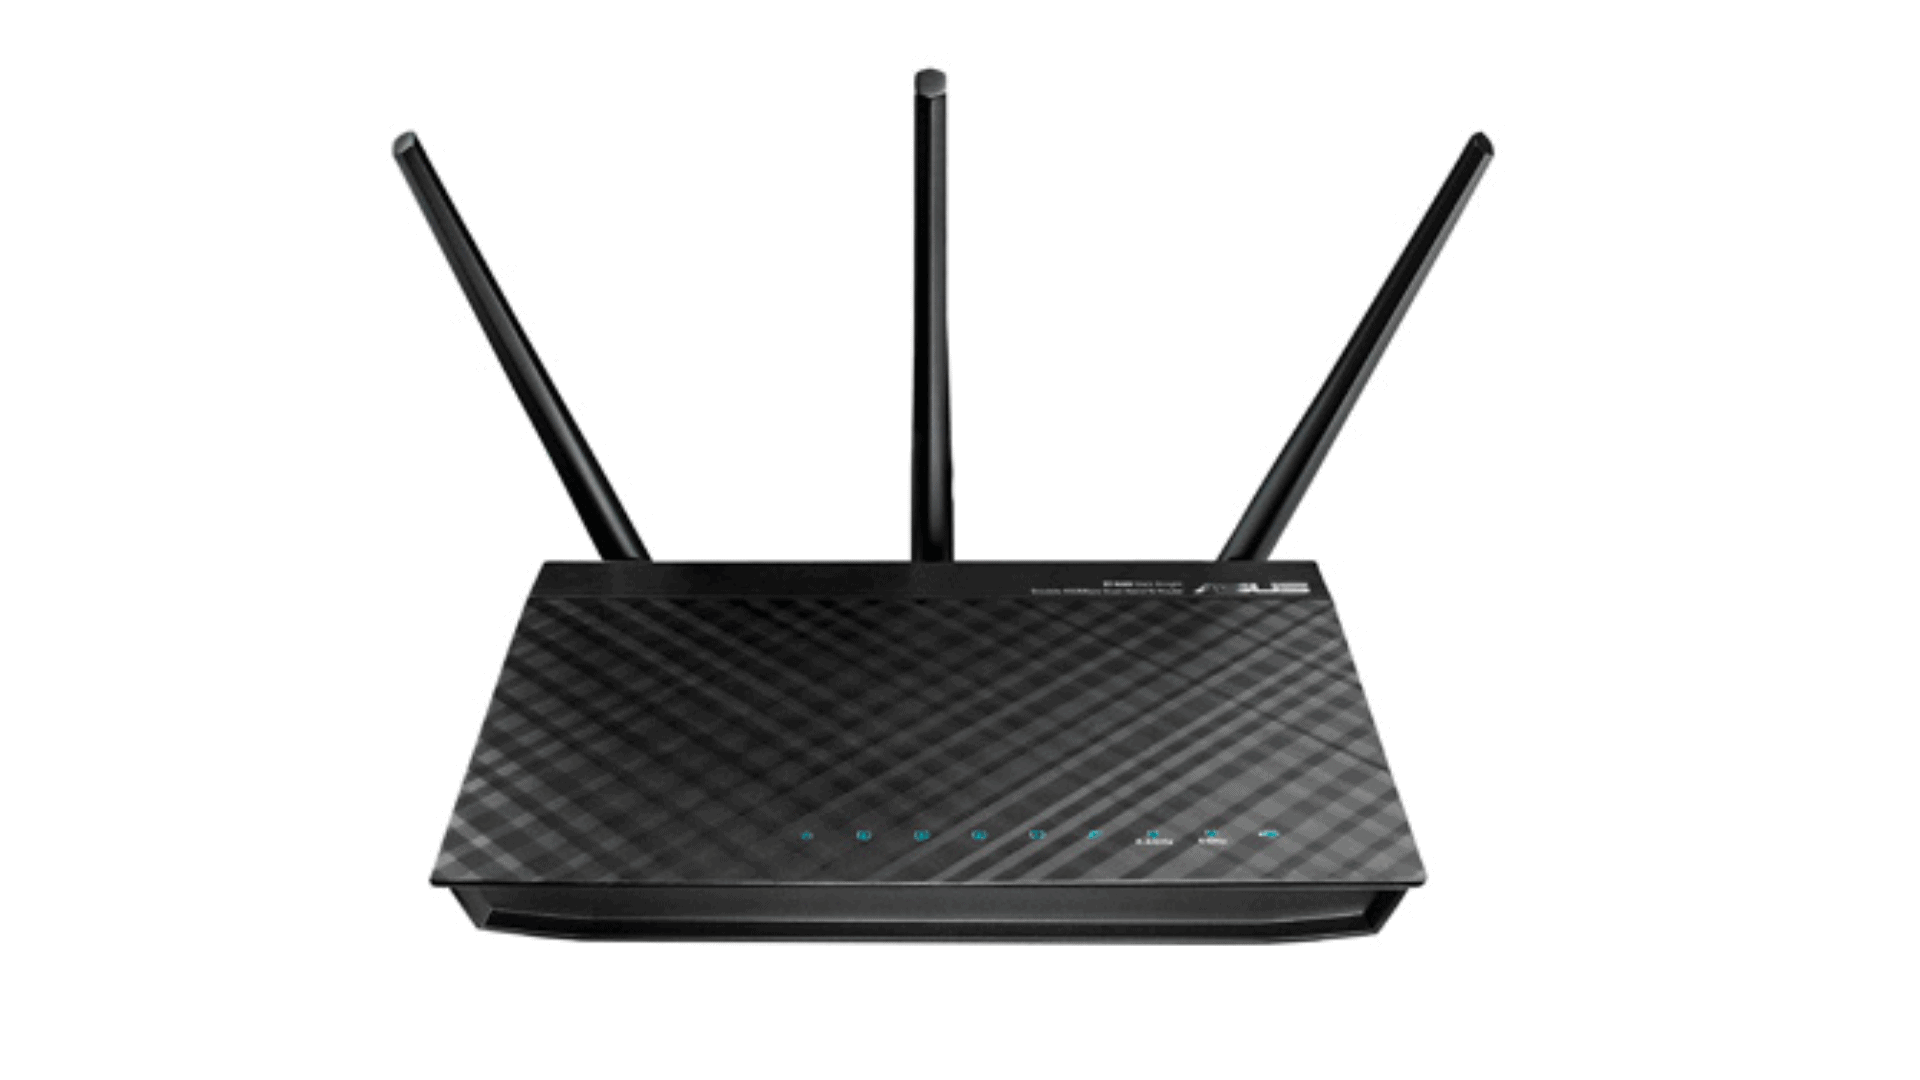 Asus RT-N66U Router with three antennas